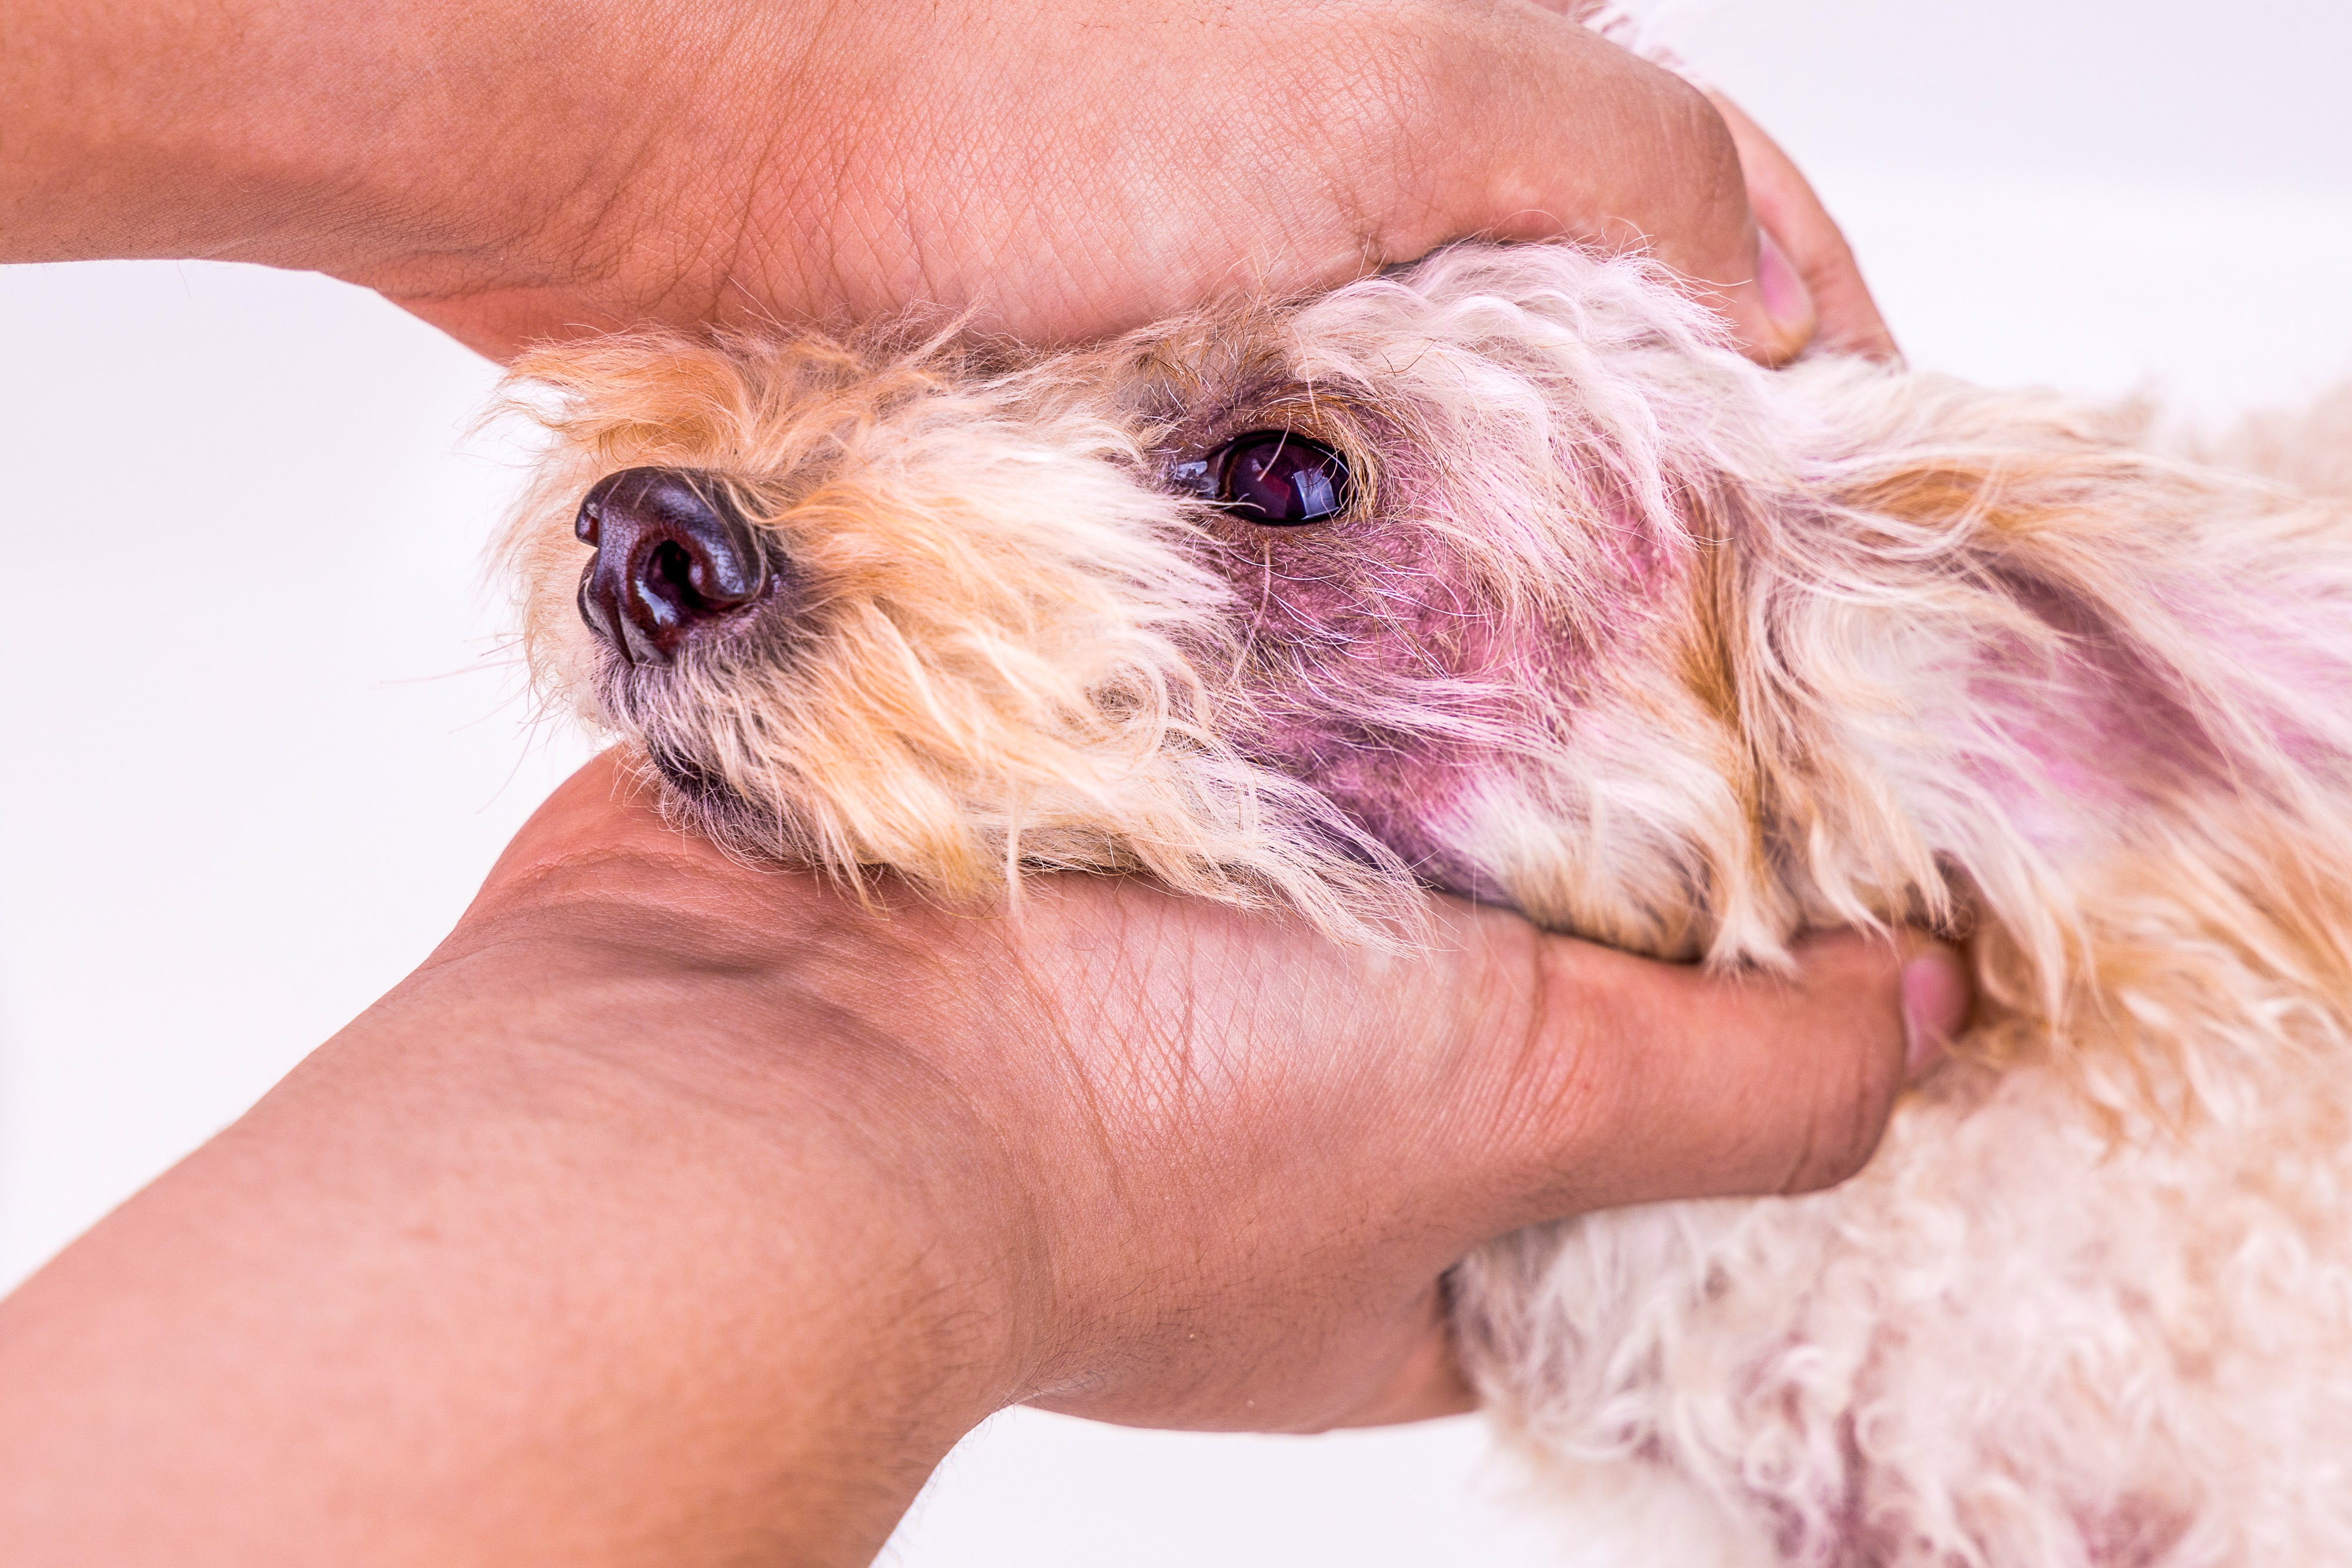 a dog with a skin yeast infection around their eye